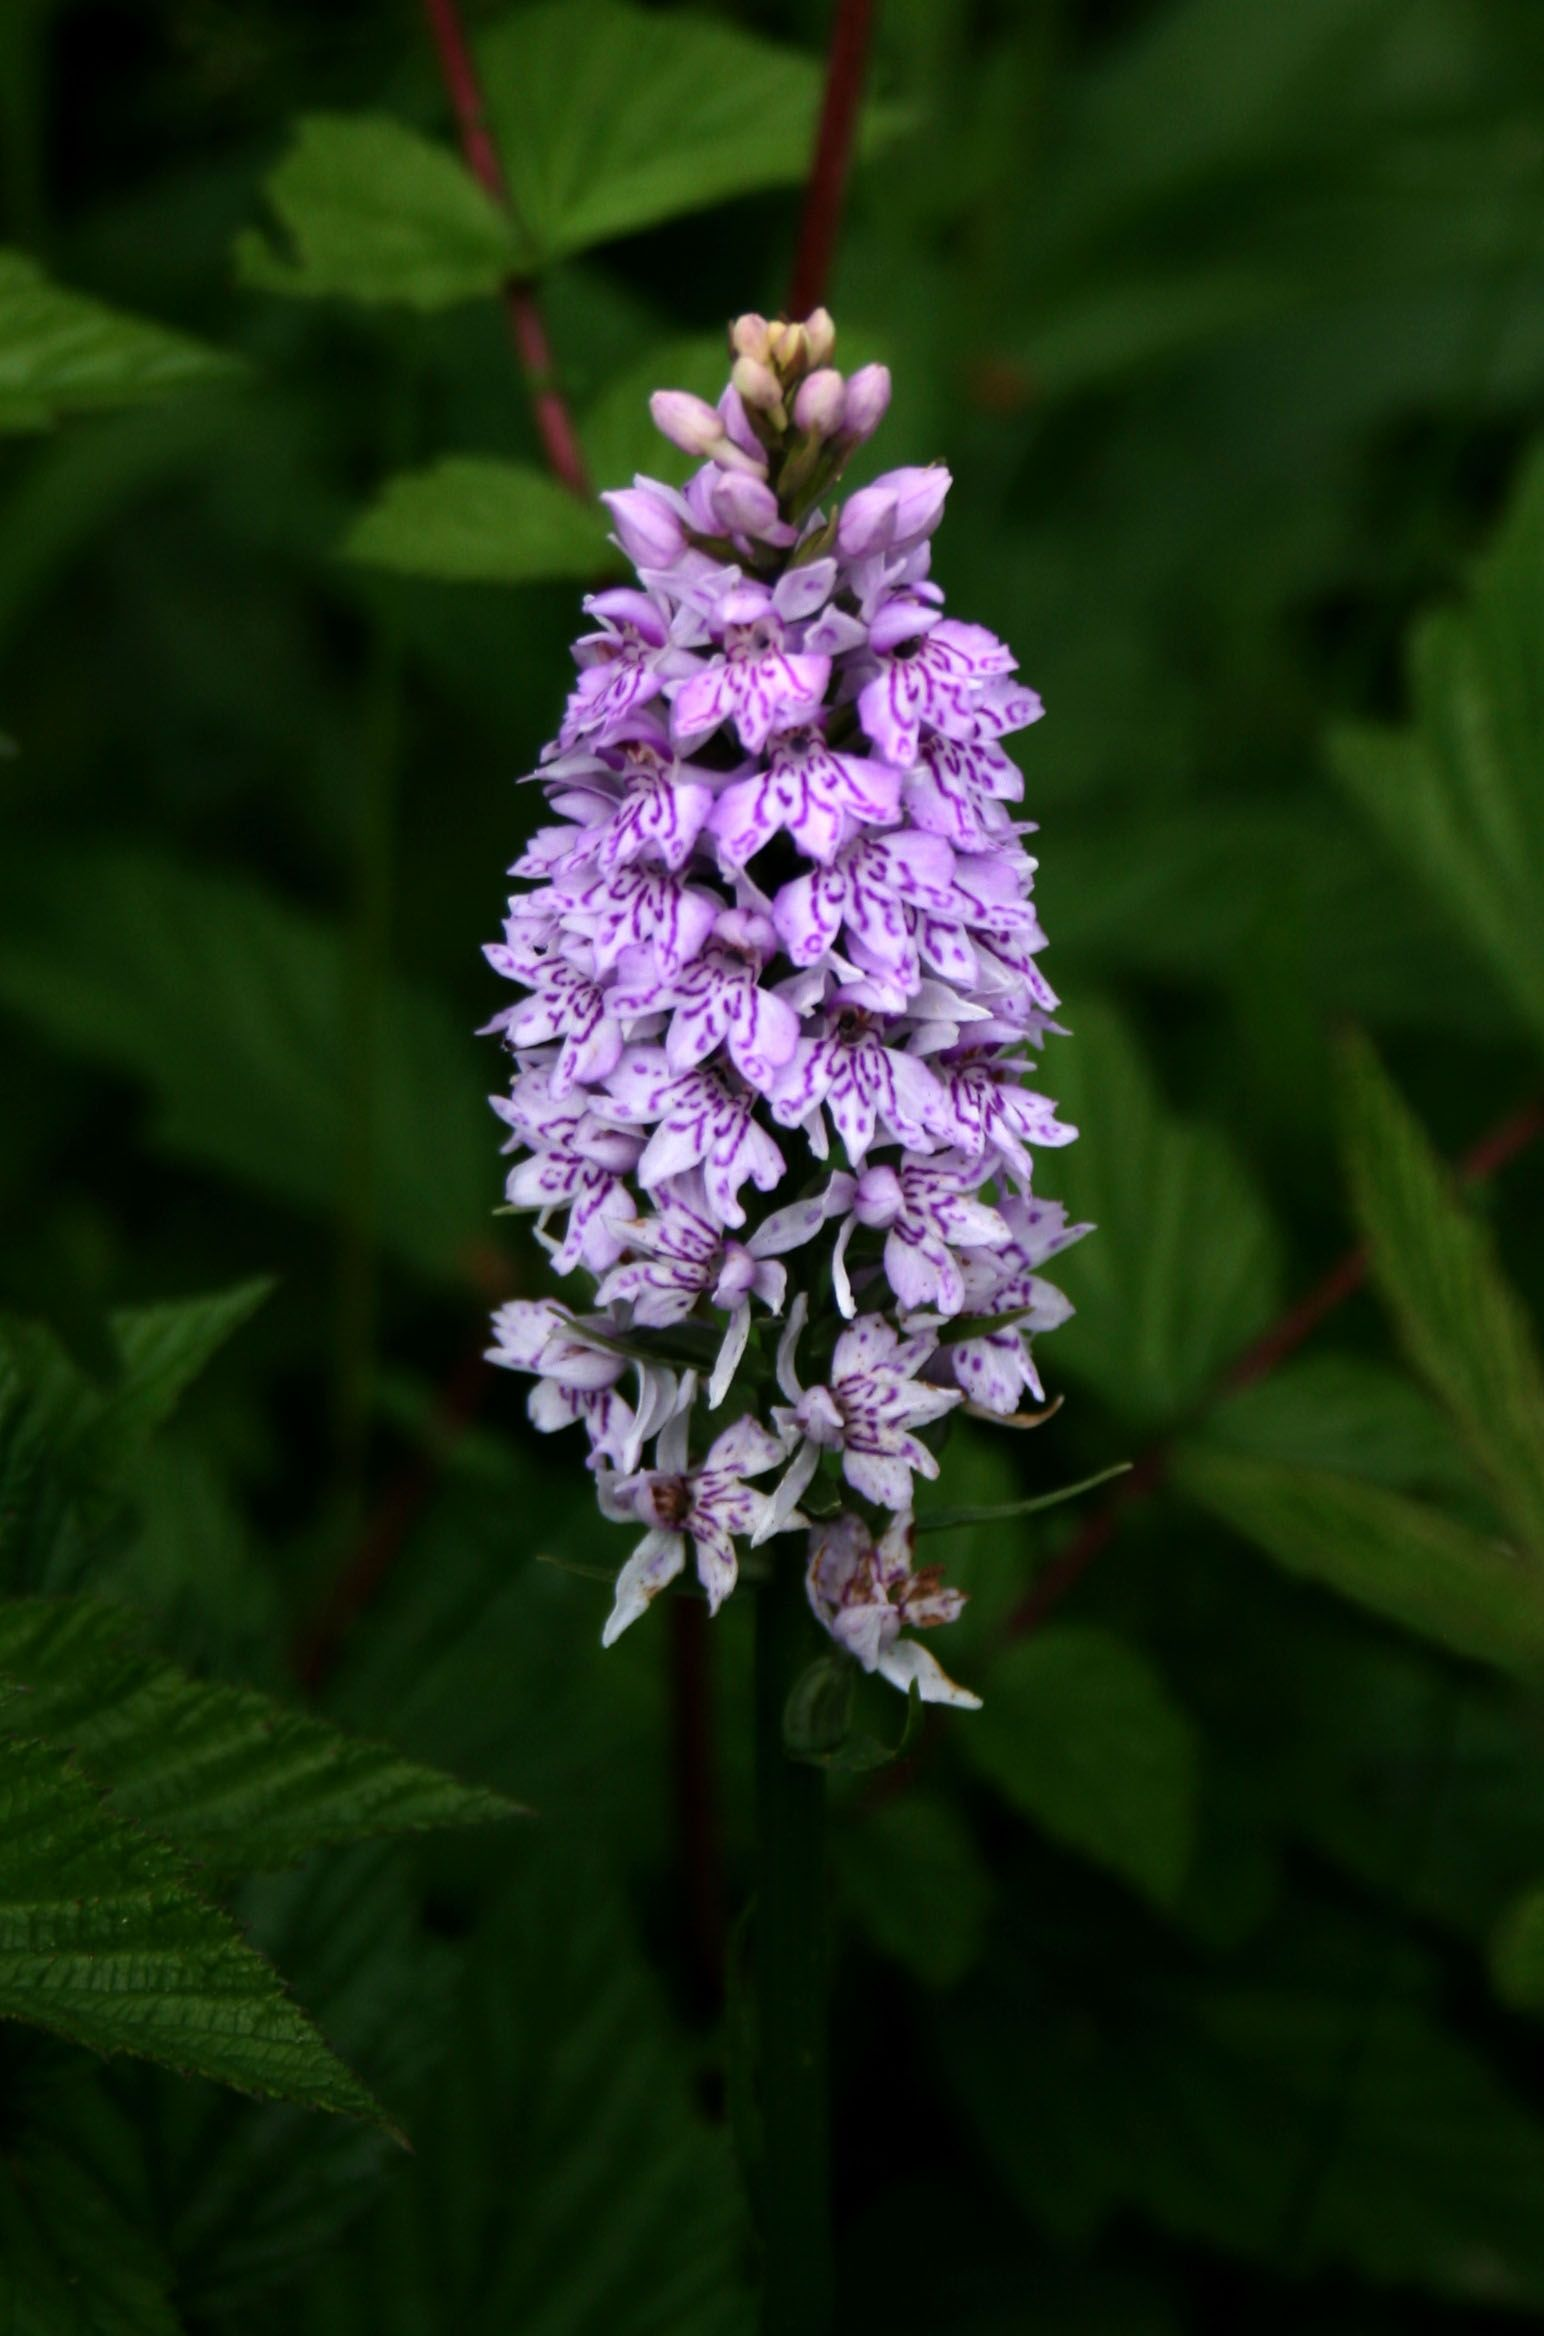 Common Spotted Orchid Dactylorhiza Fuchsii On Woodland Bank At Studley Royal Water Garden Ripon Y British Wild Flowers Flower Images Flower Identification